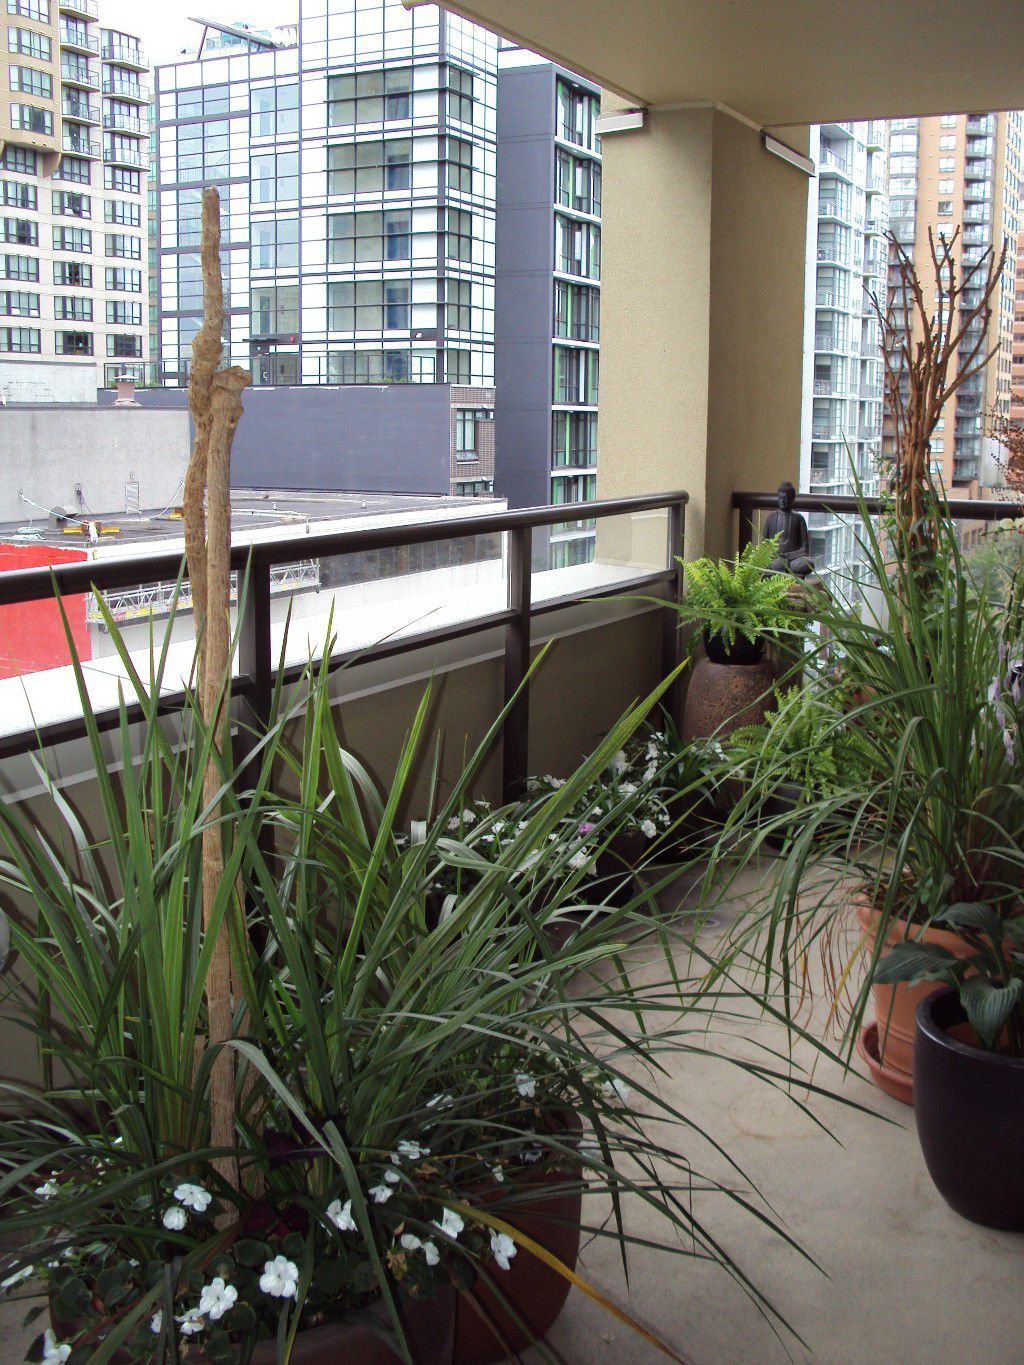 Photo 5: Photos: 803 789 Drake Street in Vancouver: Metrotown Condo for sale (Burnaby South)